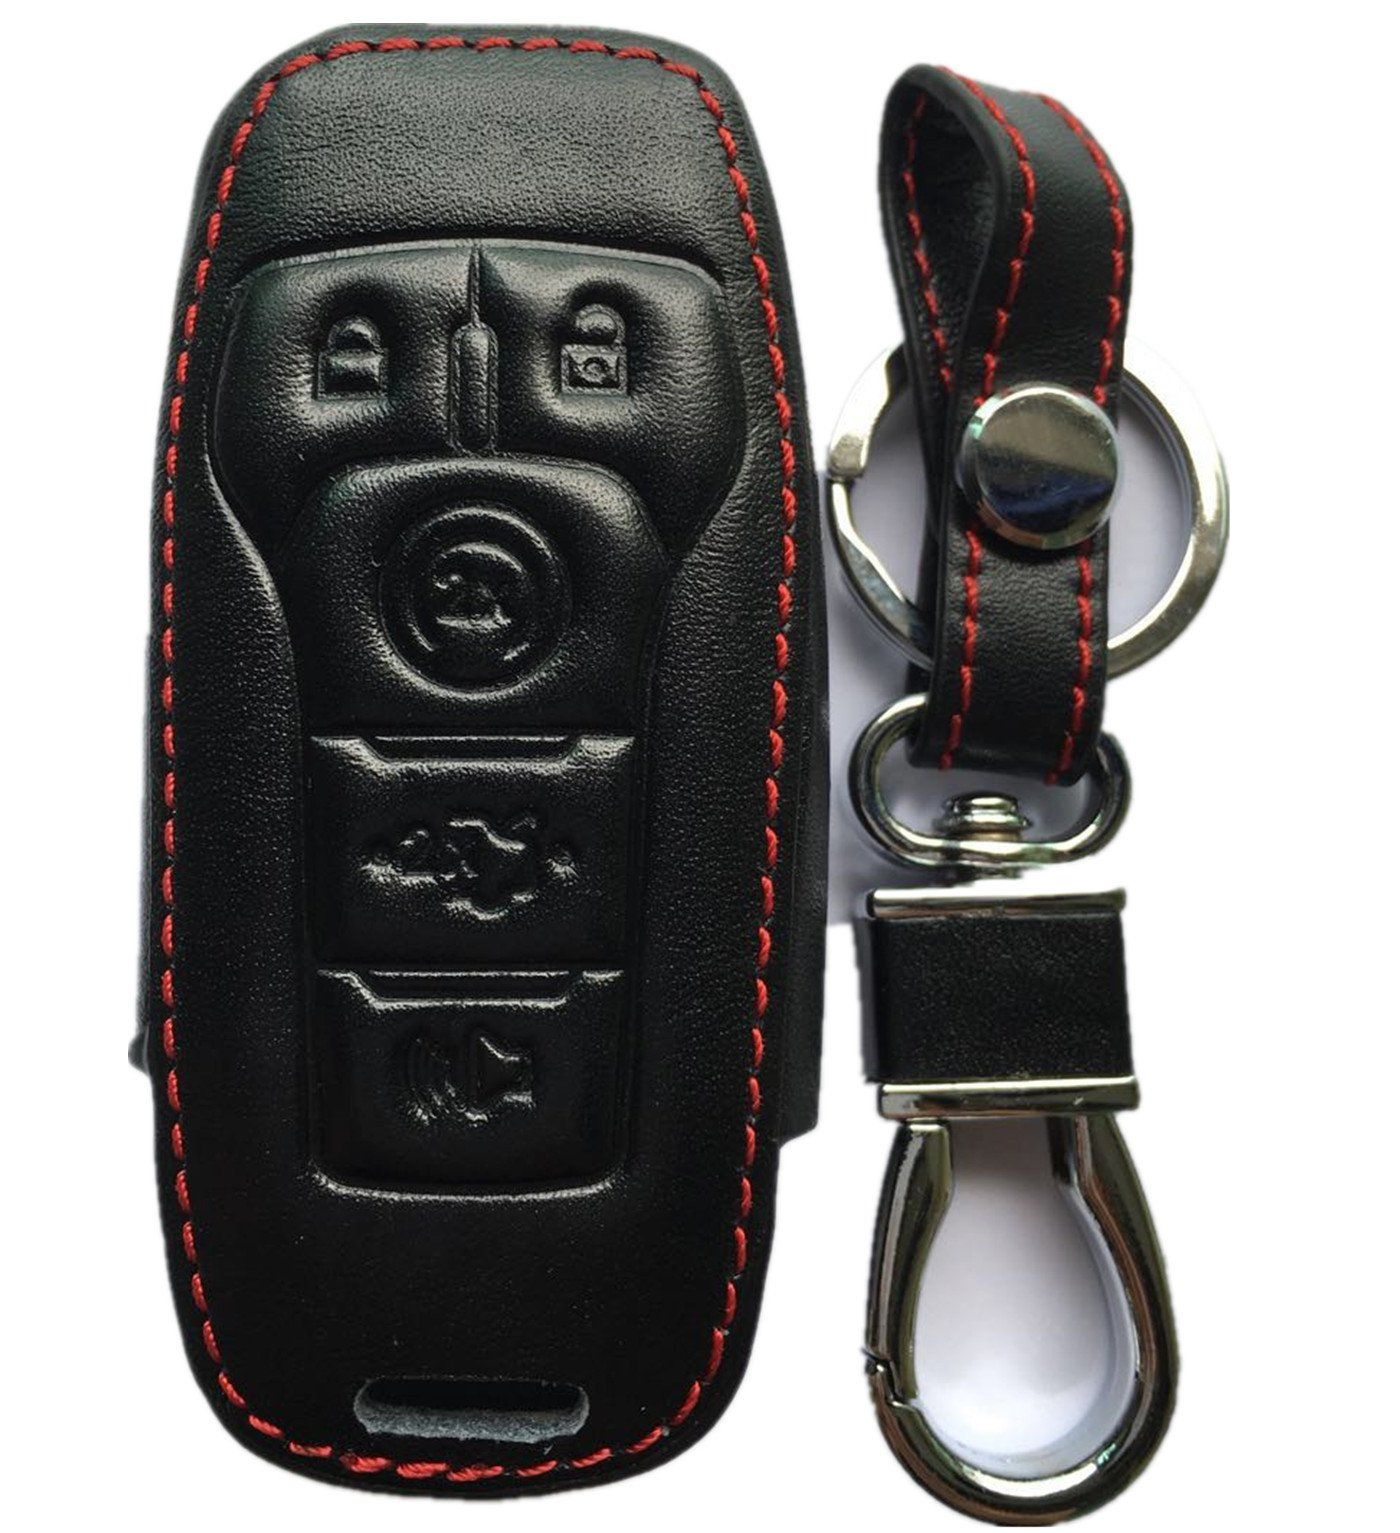 Rpkey Leather Keyless Entry Remote Control Key Fob Cover Case